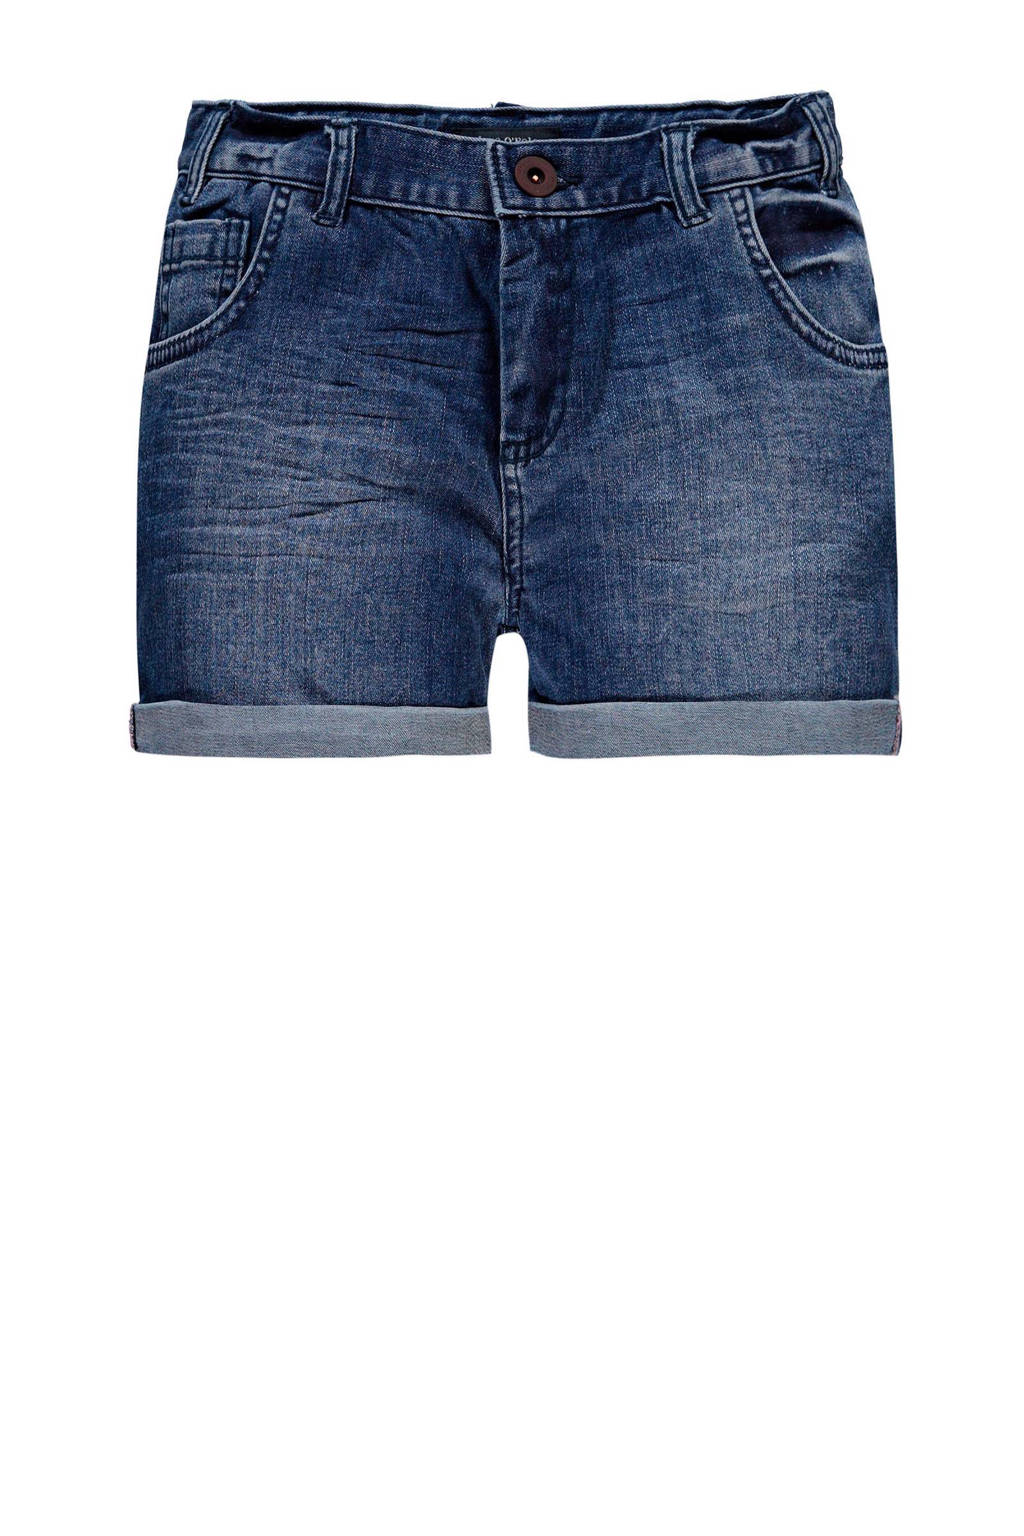 77c6288858b9a denim short